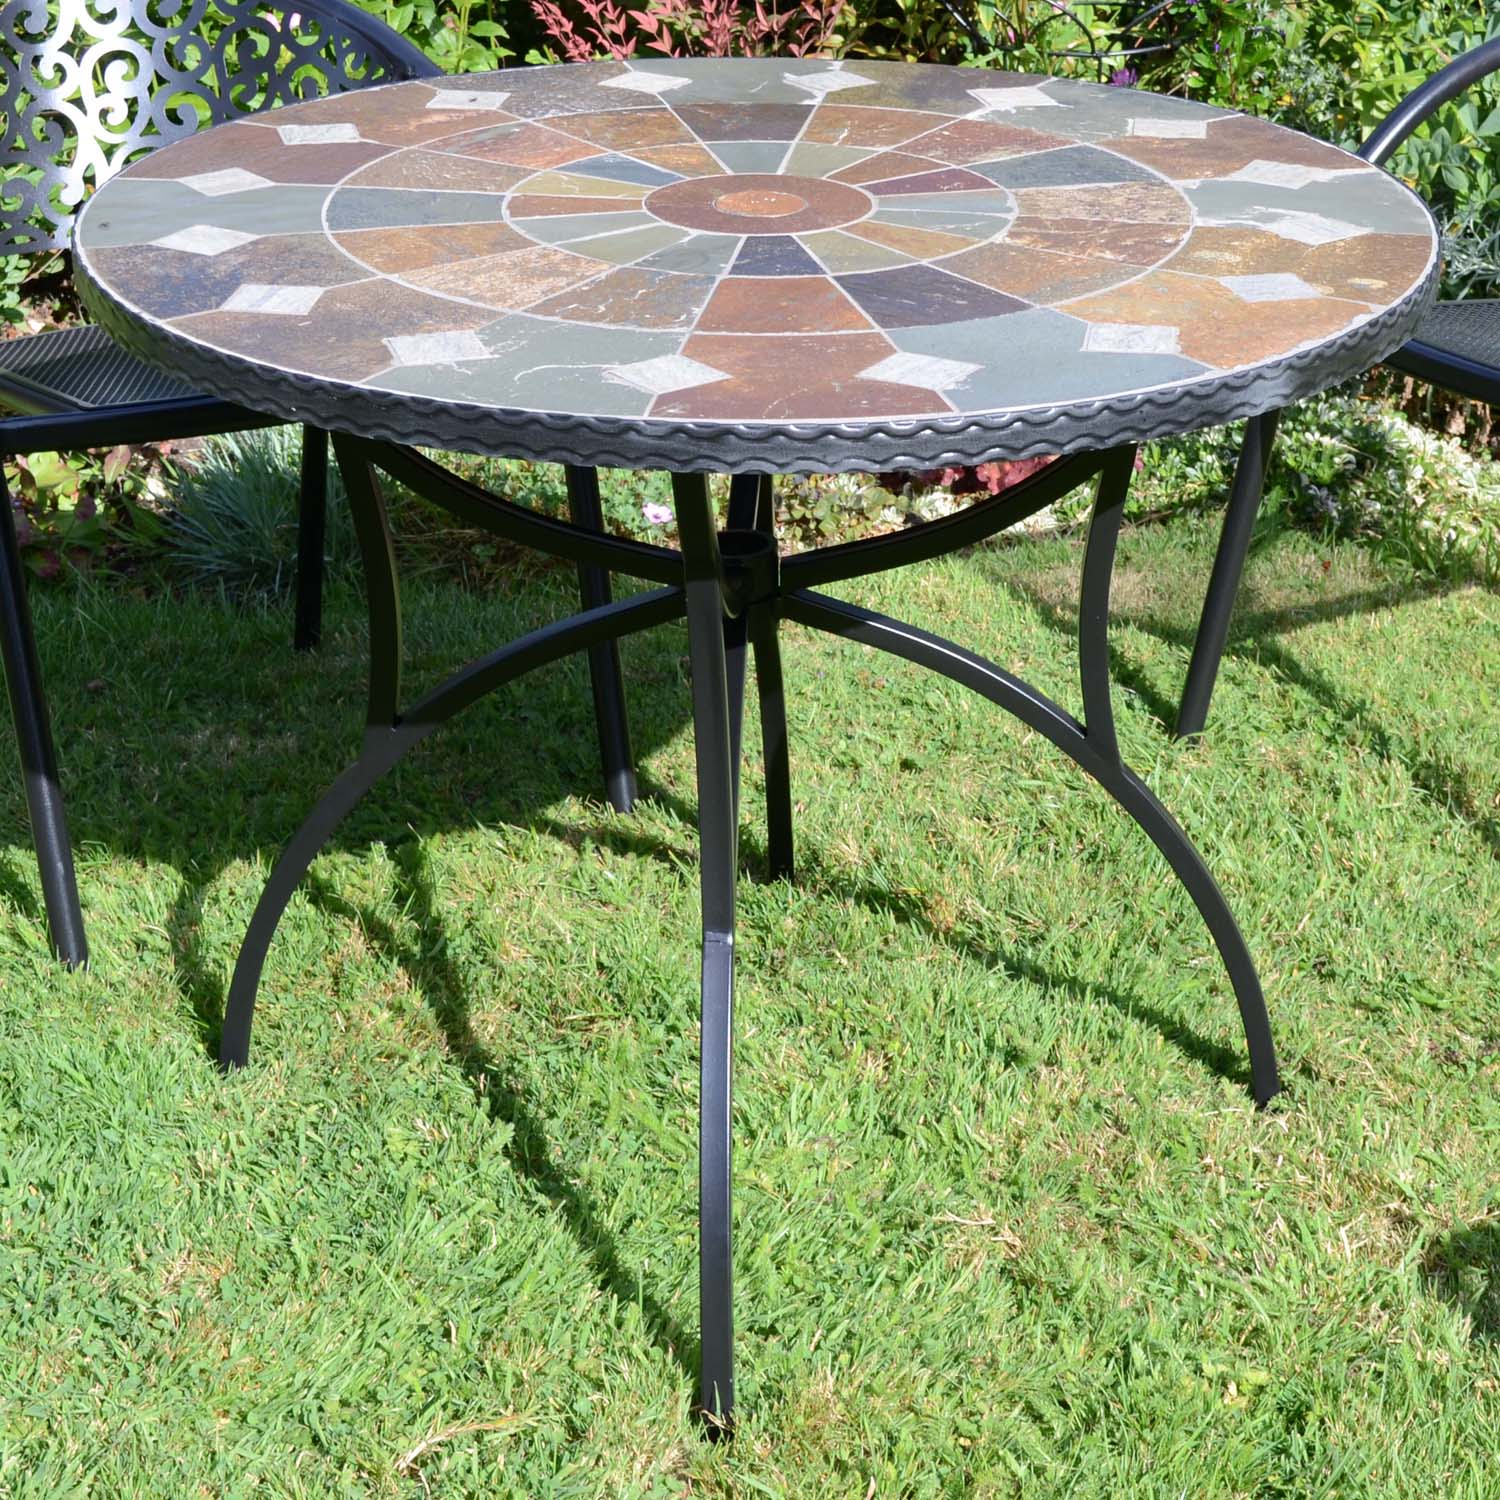 Europa Stone Granada 91cm Patio Garden Table - Ruby's Garden Boutique